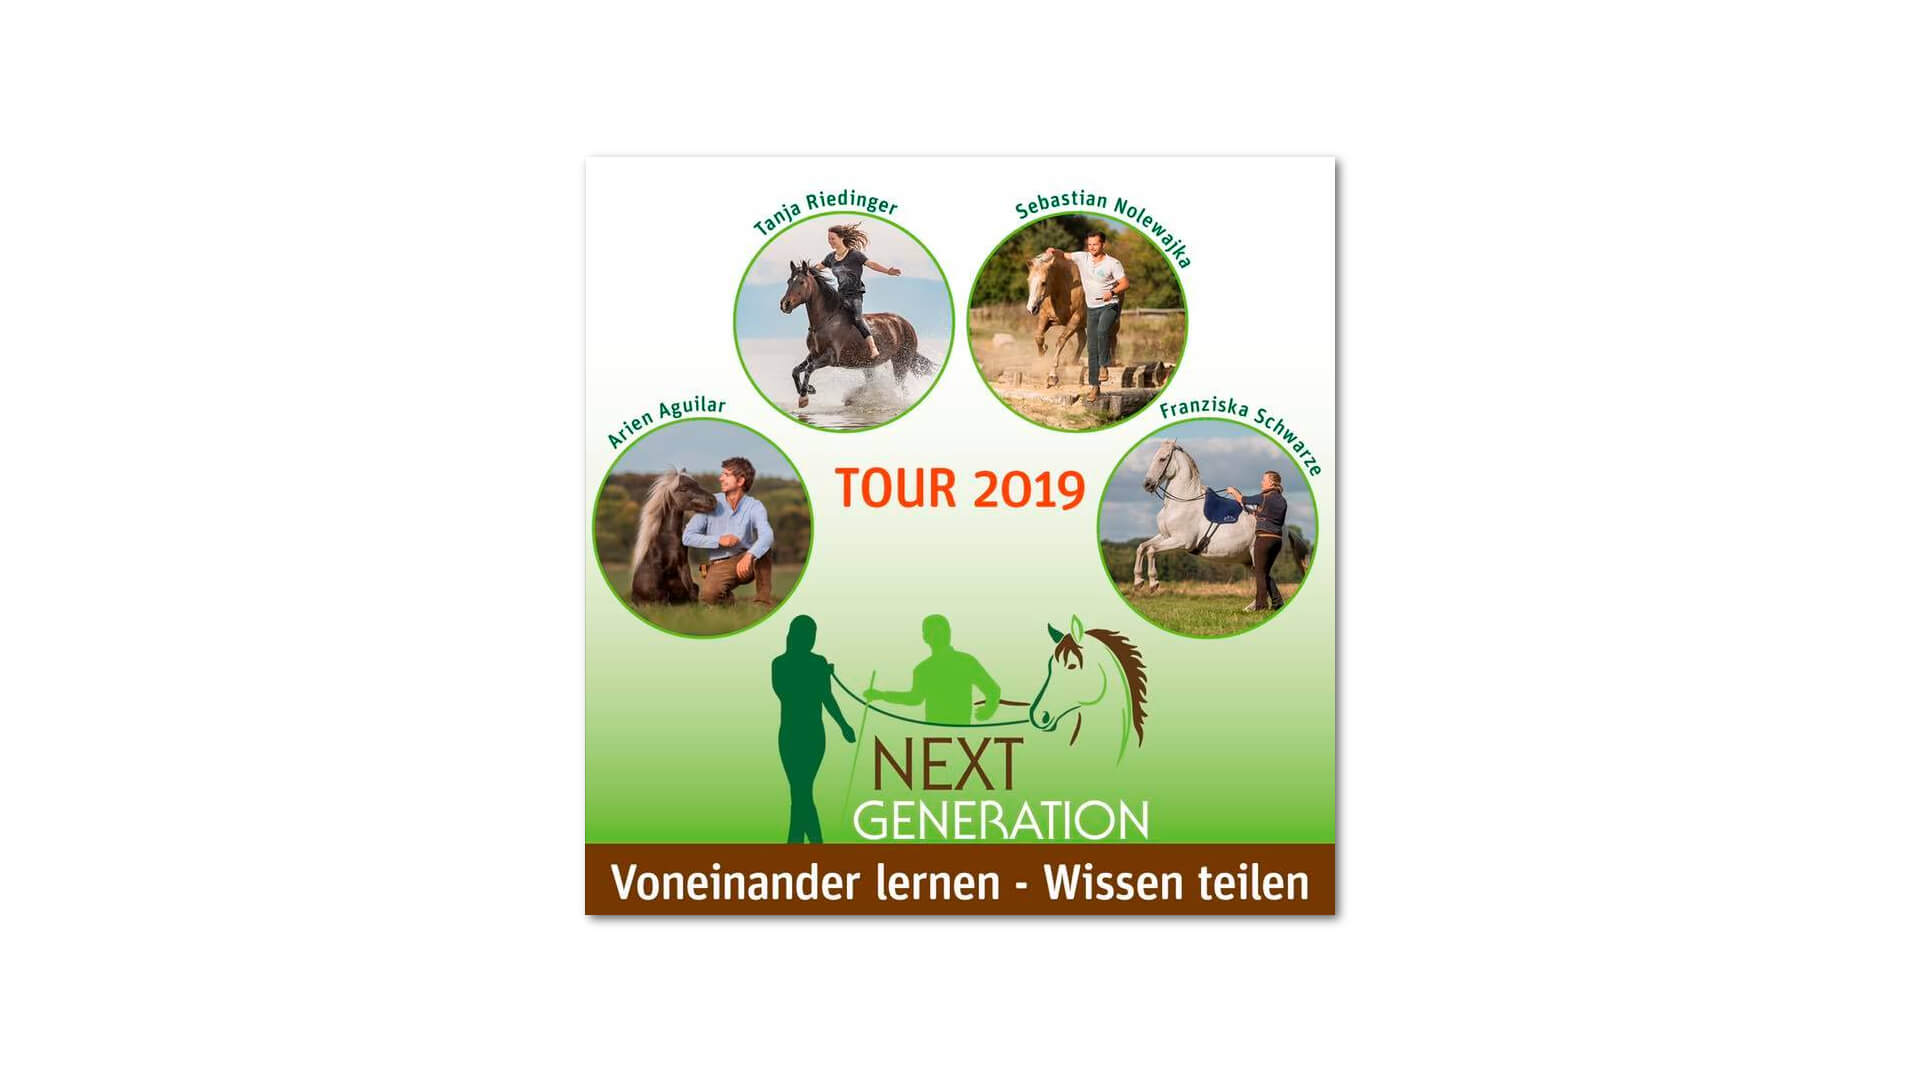 NEXT GENERATION TOUR 2019